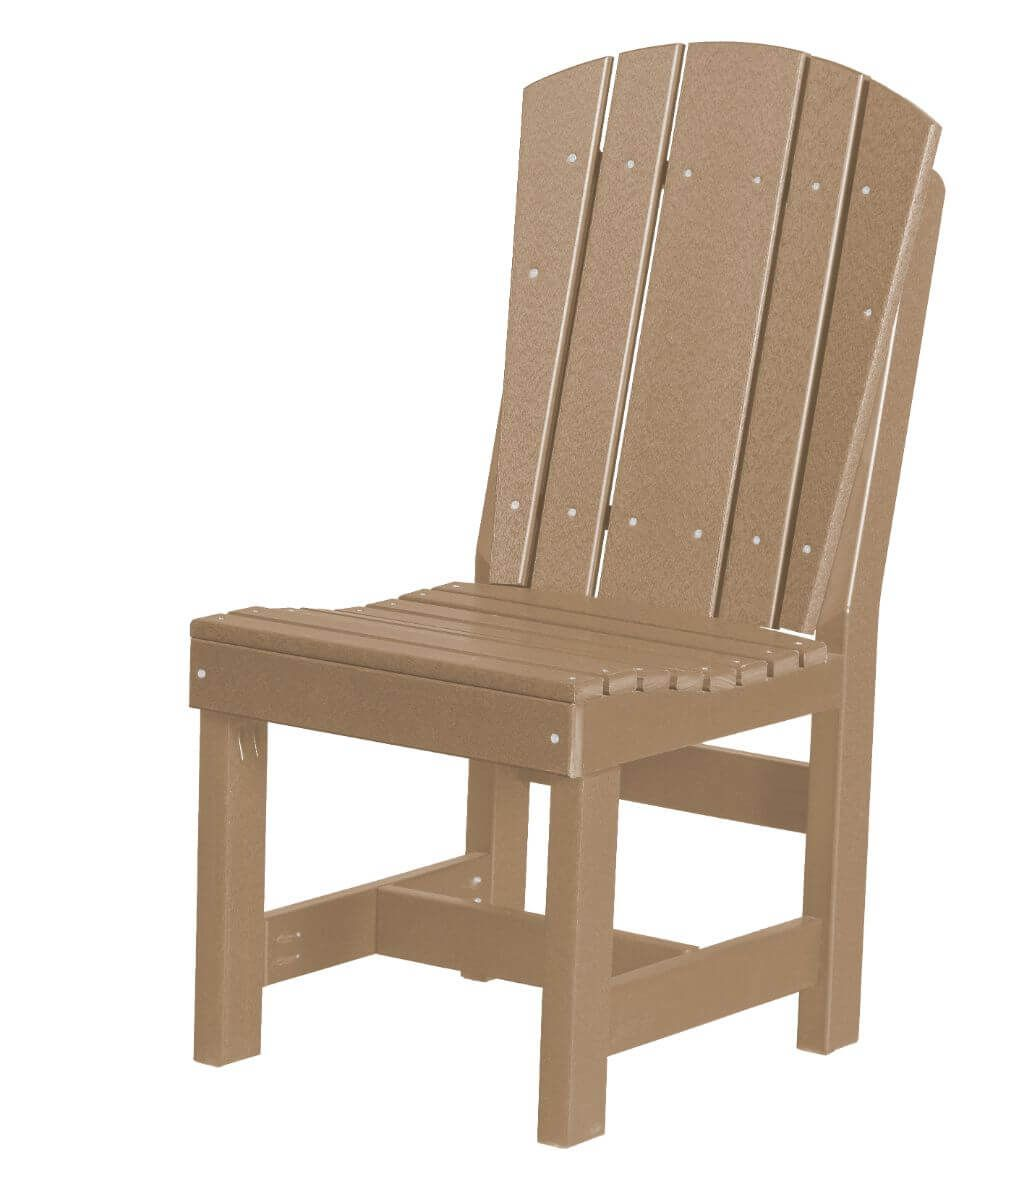 Weathered Wood Oristano Outdoor Dining Chair